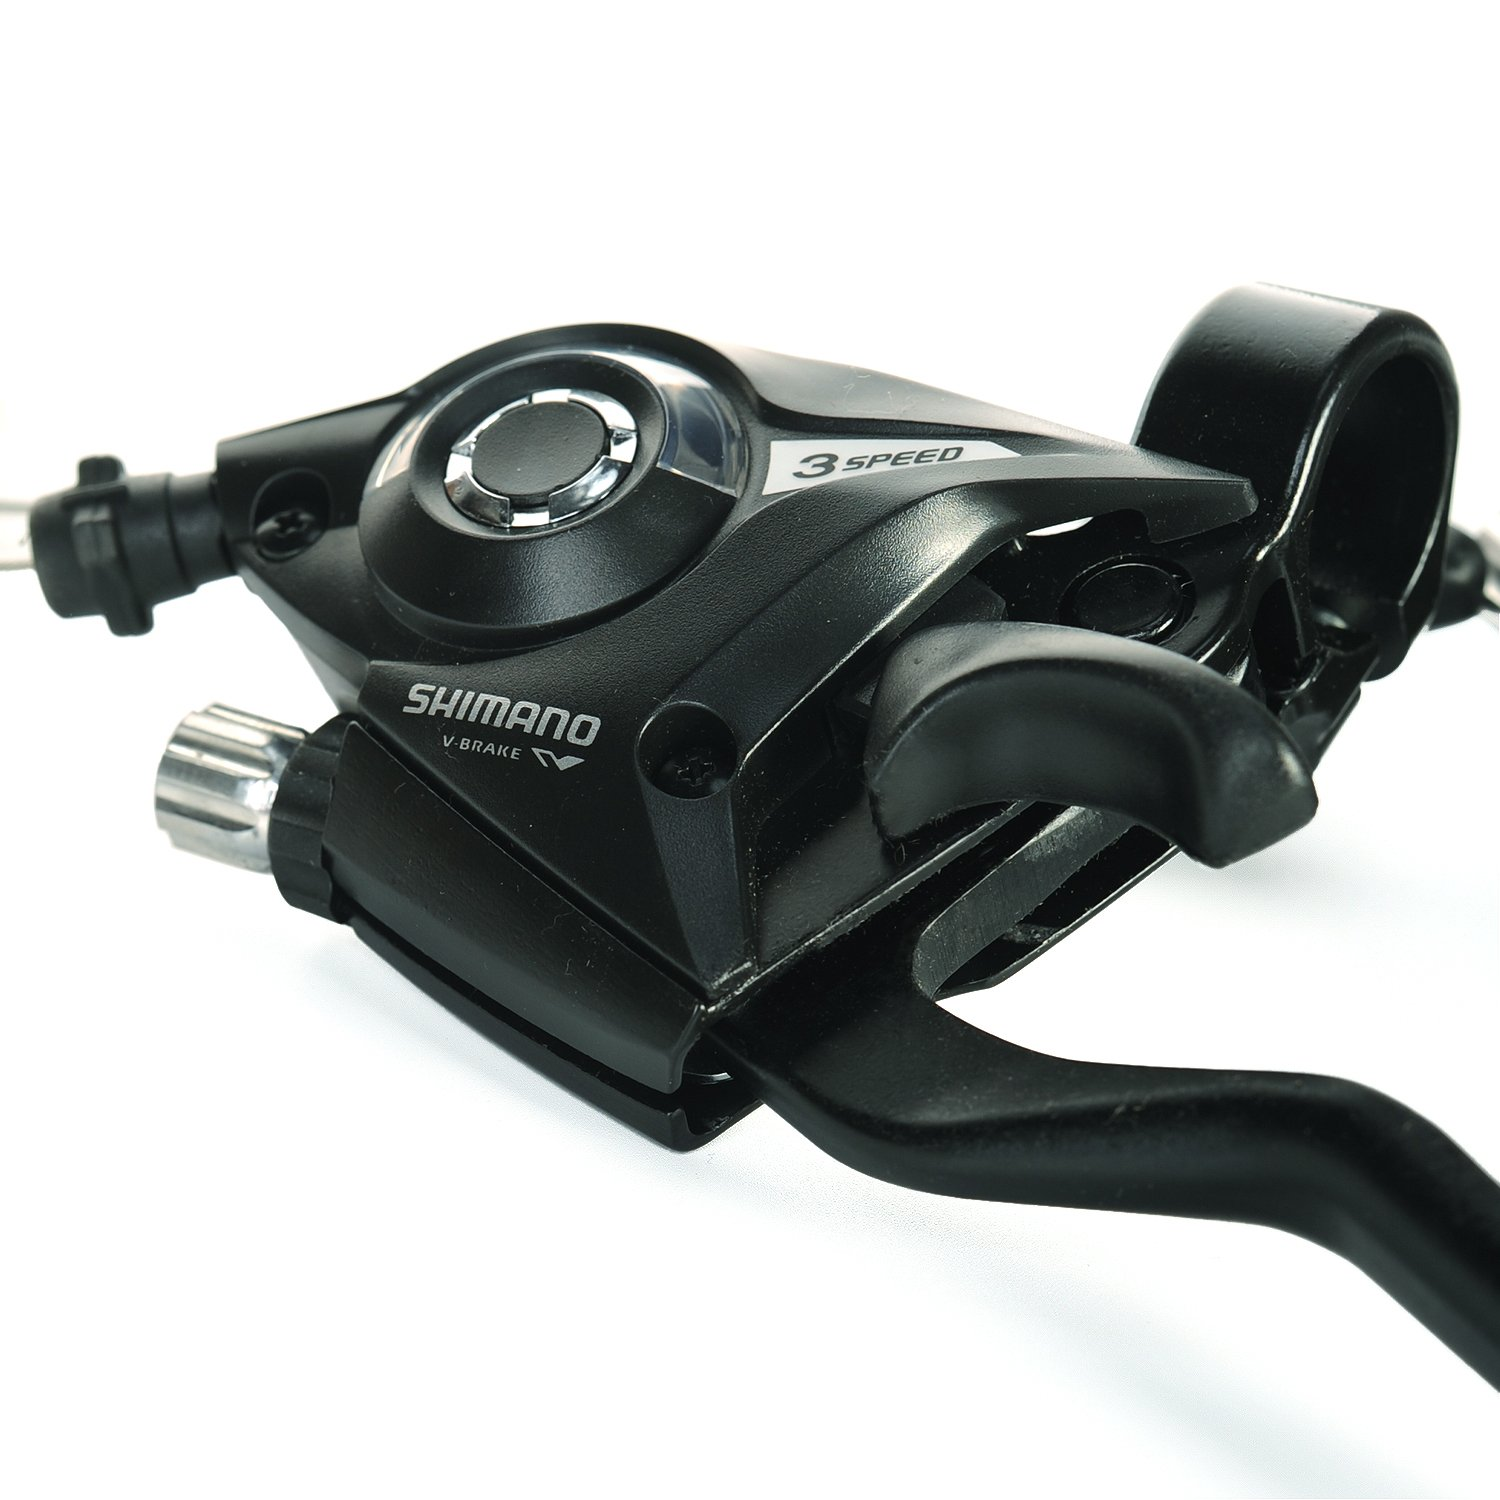 SHIMANO ST-EF51 Brake & Shifter Levers Combo Set 3x8 Pair With Shift Cable And End Caps by SHIMANO (Image #7)